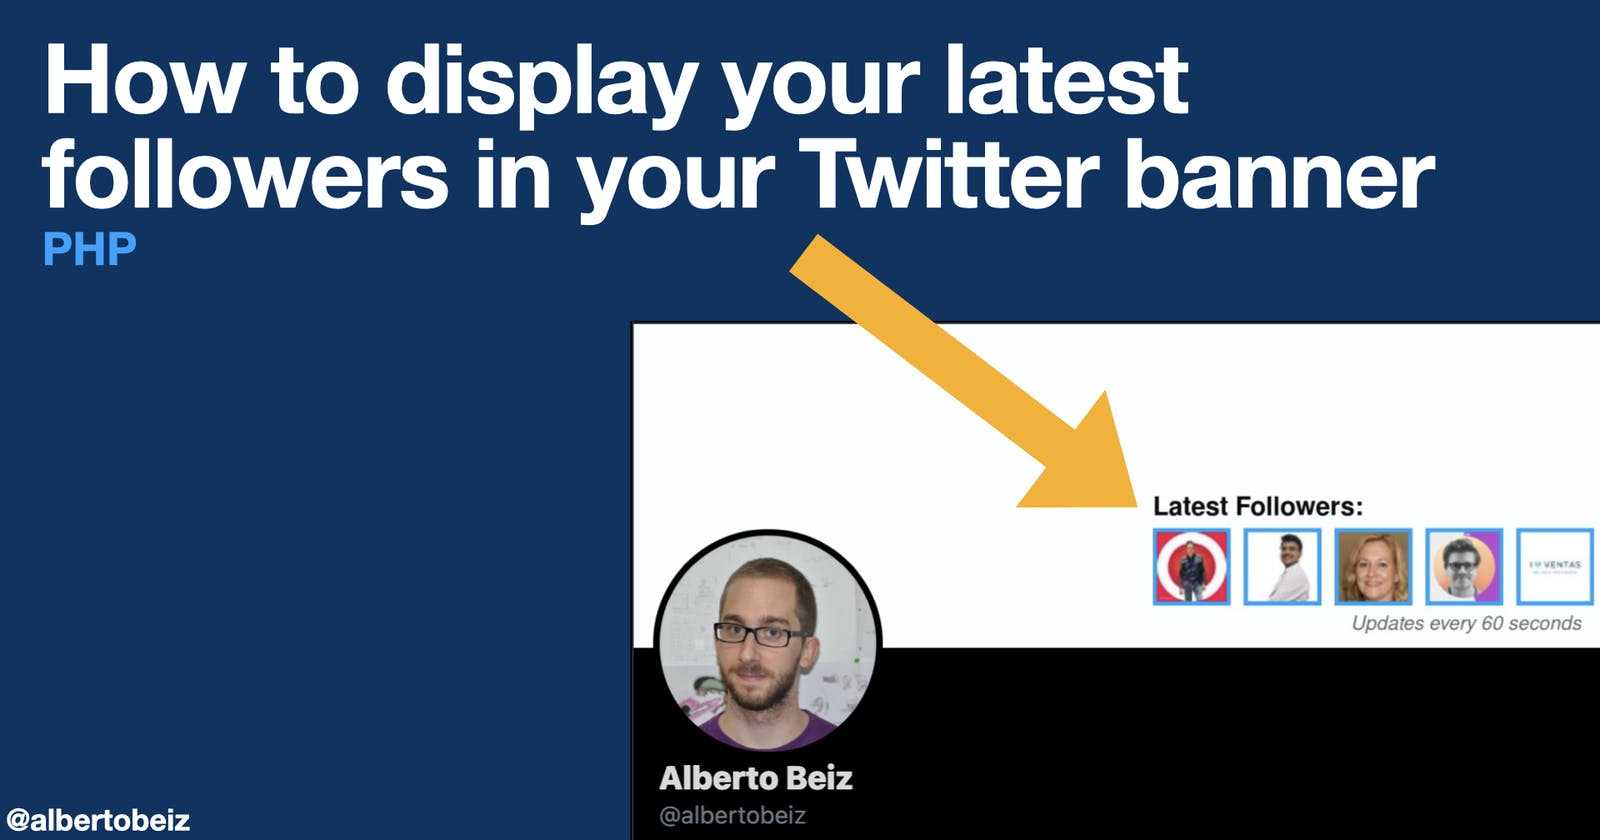 How to display your latest followers in your Twitter banner